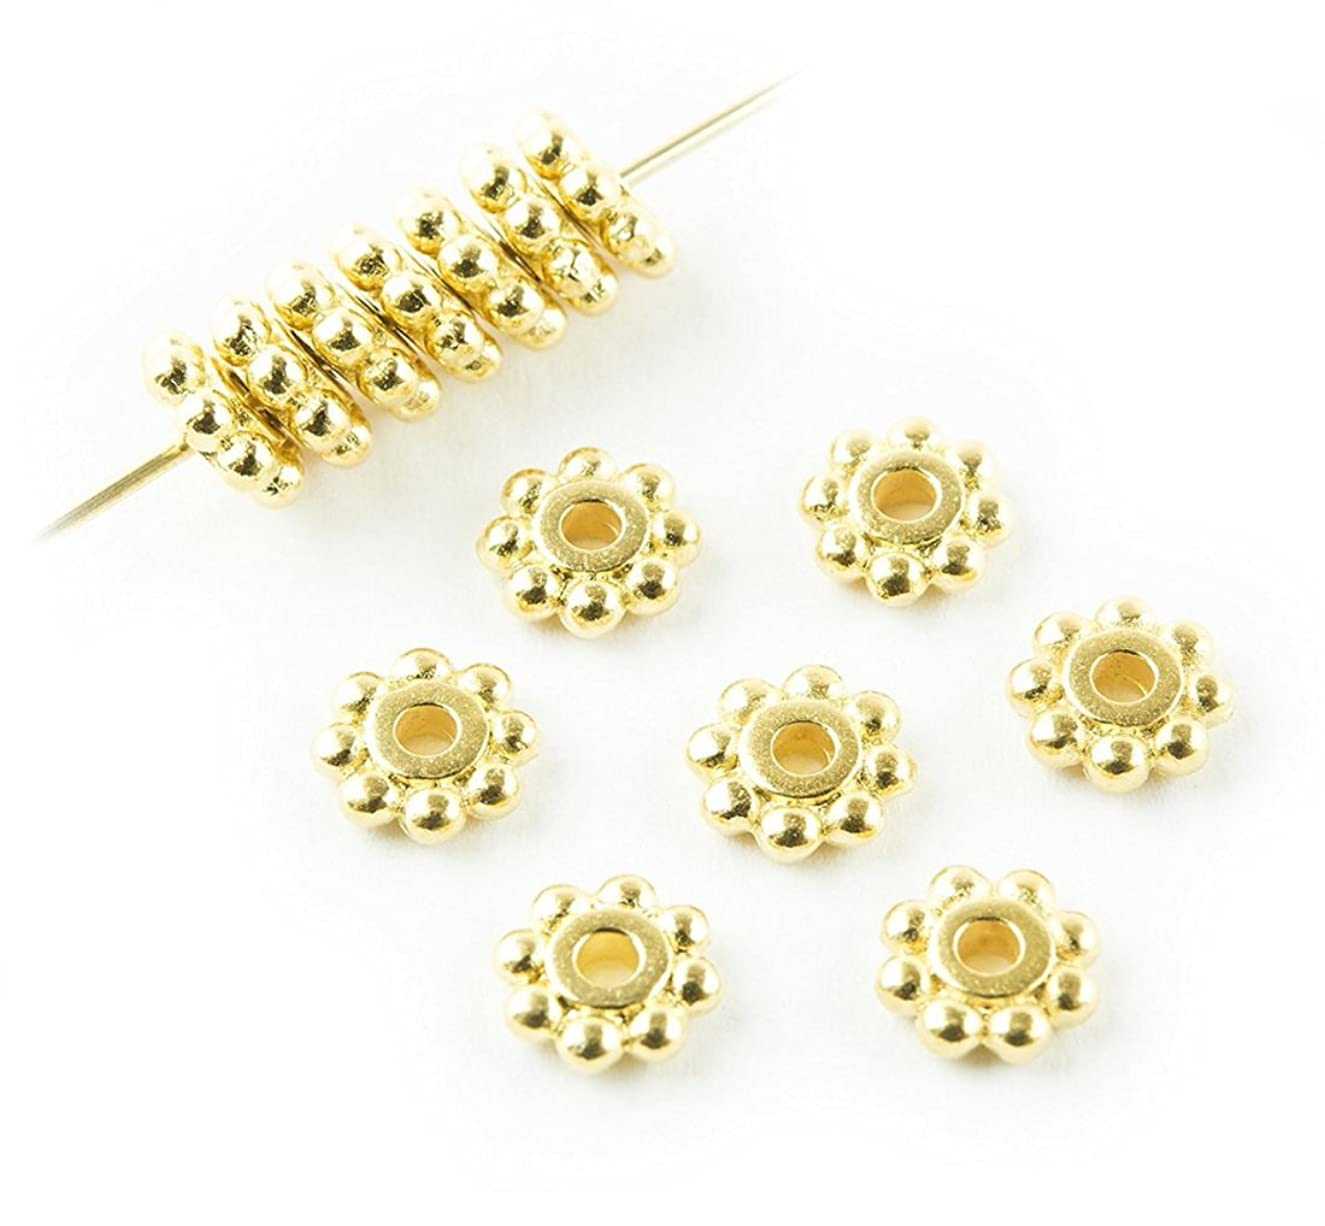 20pcs 14k Gold on Sterling Silver 4mm Small Round Daisy Flower Rondelle Spacer Metal Beads (Hole ~ 2mm) for Craft Making SS285